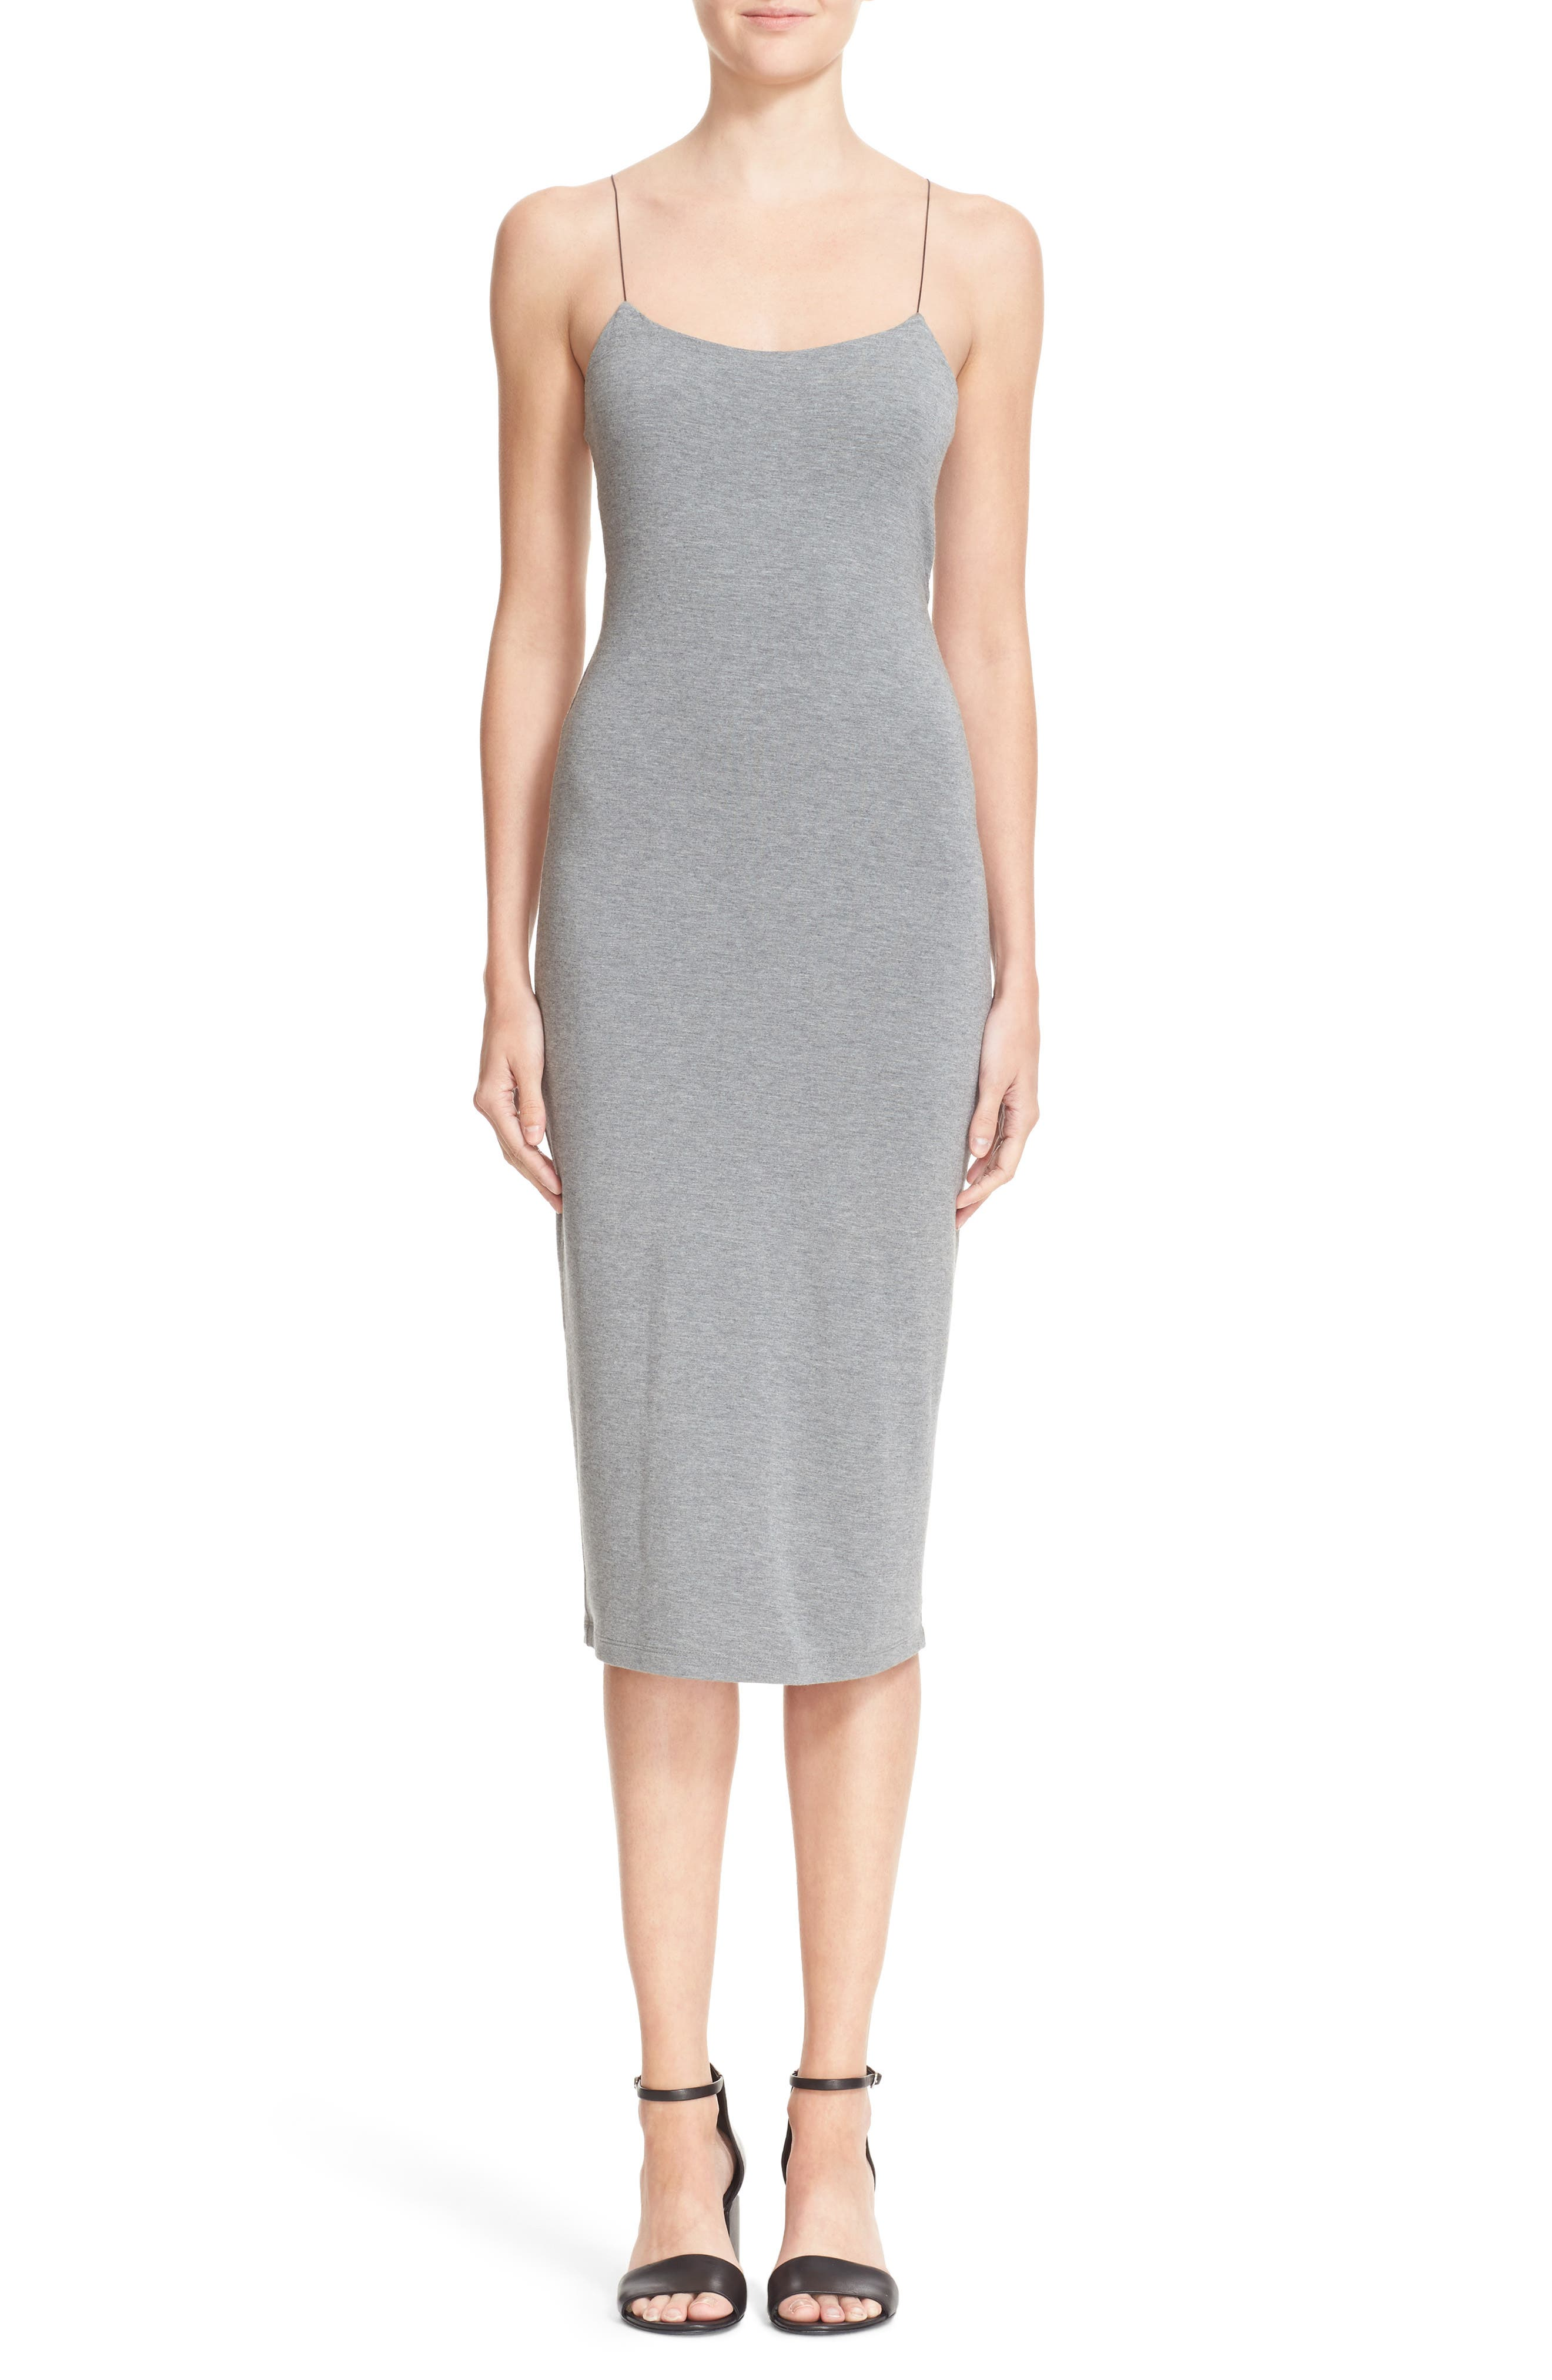 Strappy Tank Dress,                         Main,                         color, Heather Grey